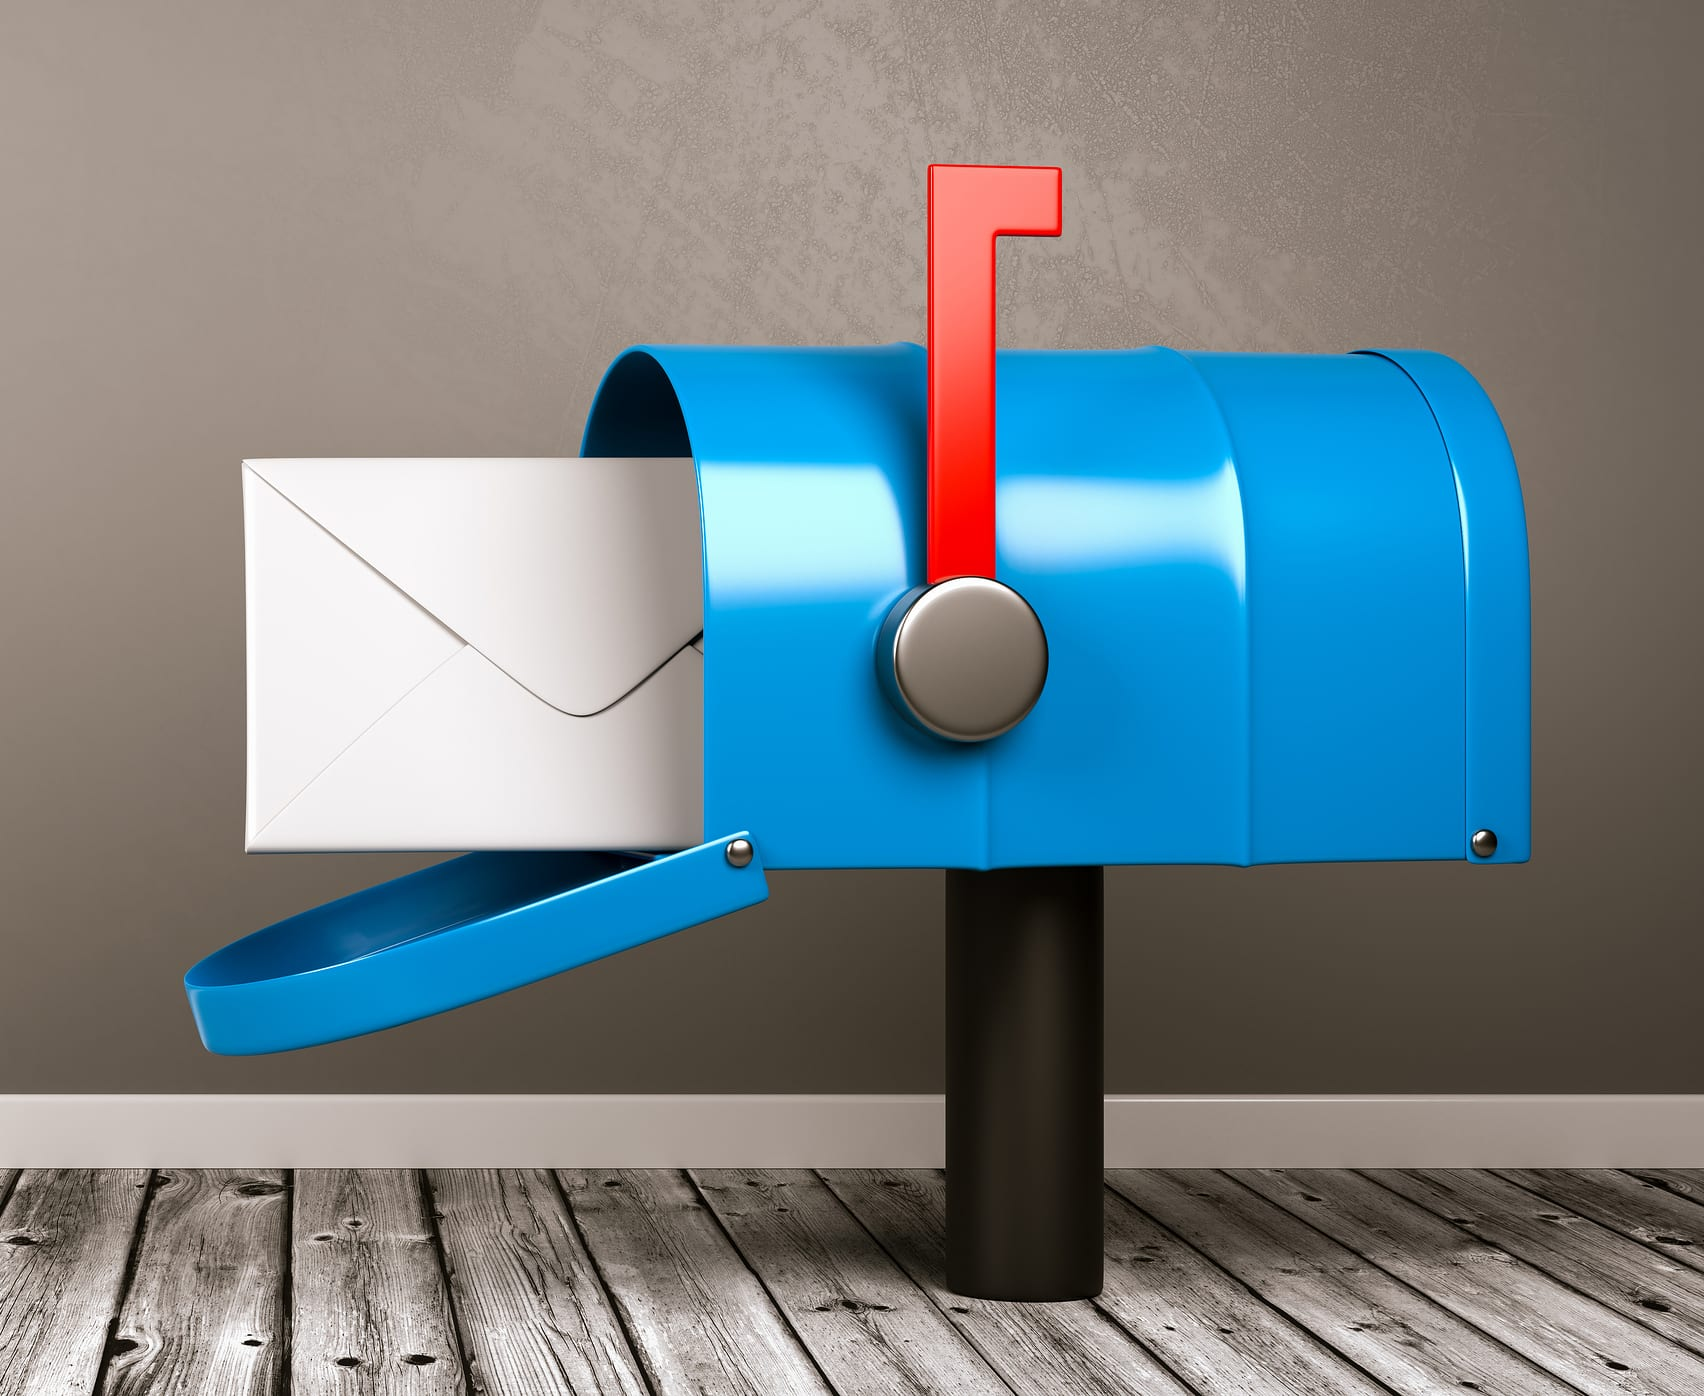 Blue Mailbox with Envelop on Wooden Floor in a Gray Wall Room with Copy Space 3D Illustration